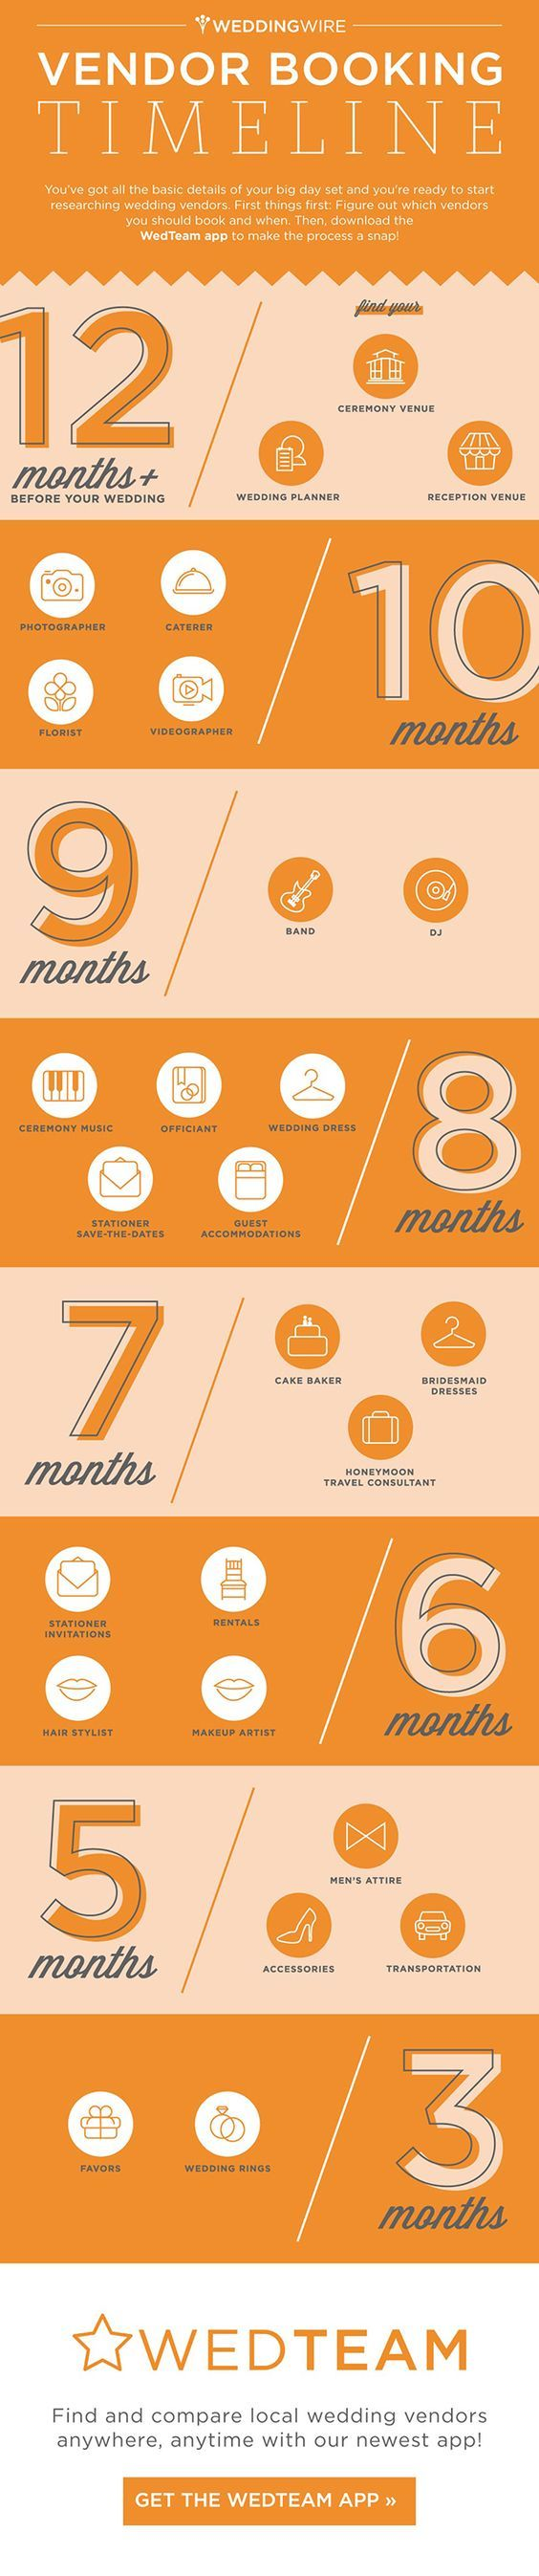 Essential timelines to keep in mind for your next event - Grab the Vendor Booking Timeline infographic.